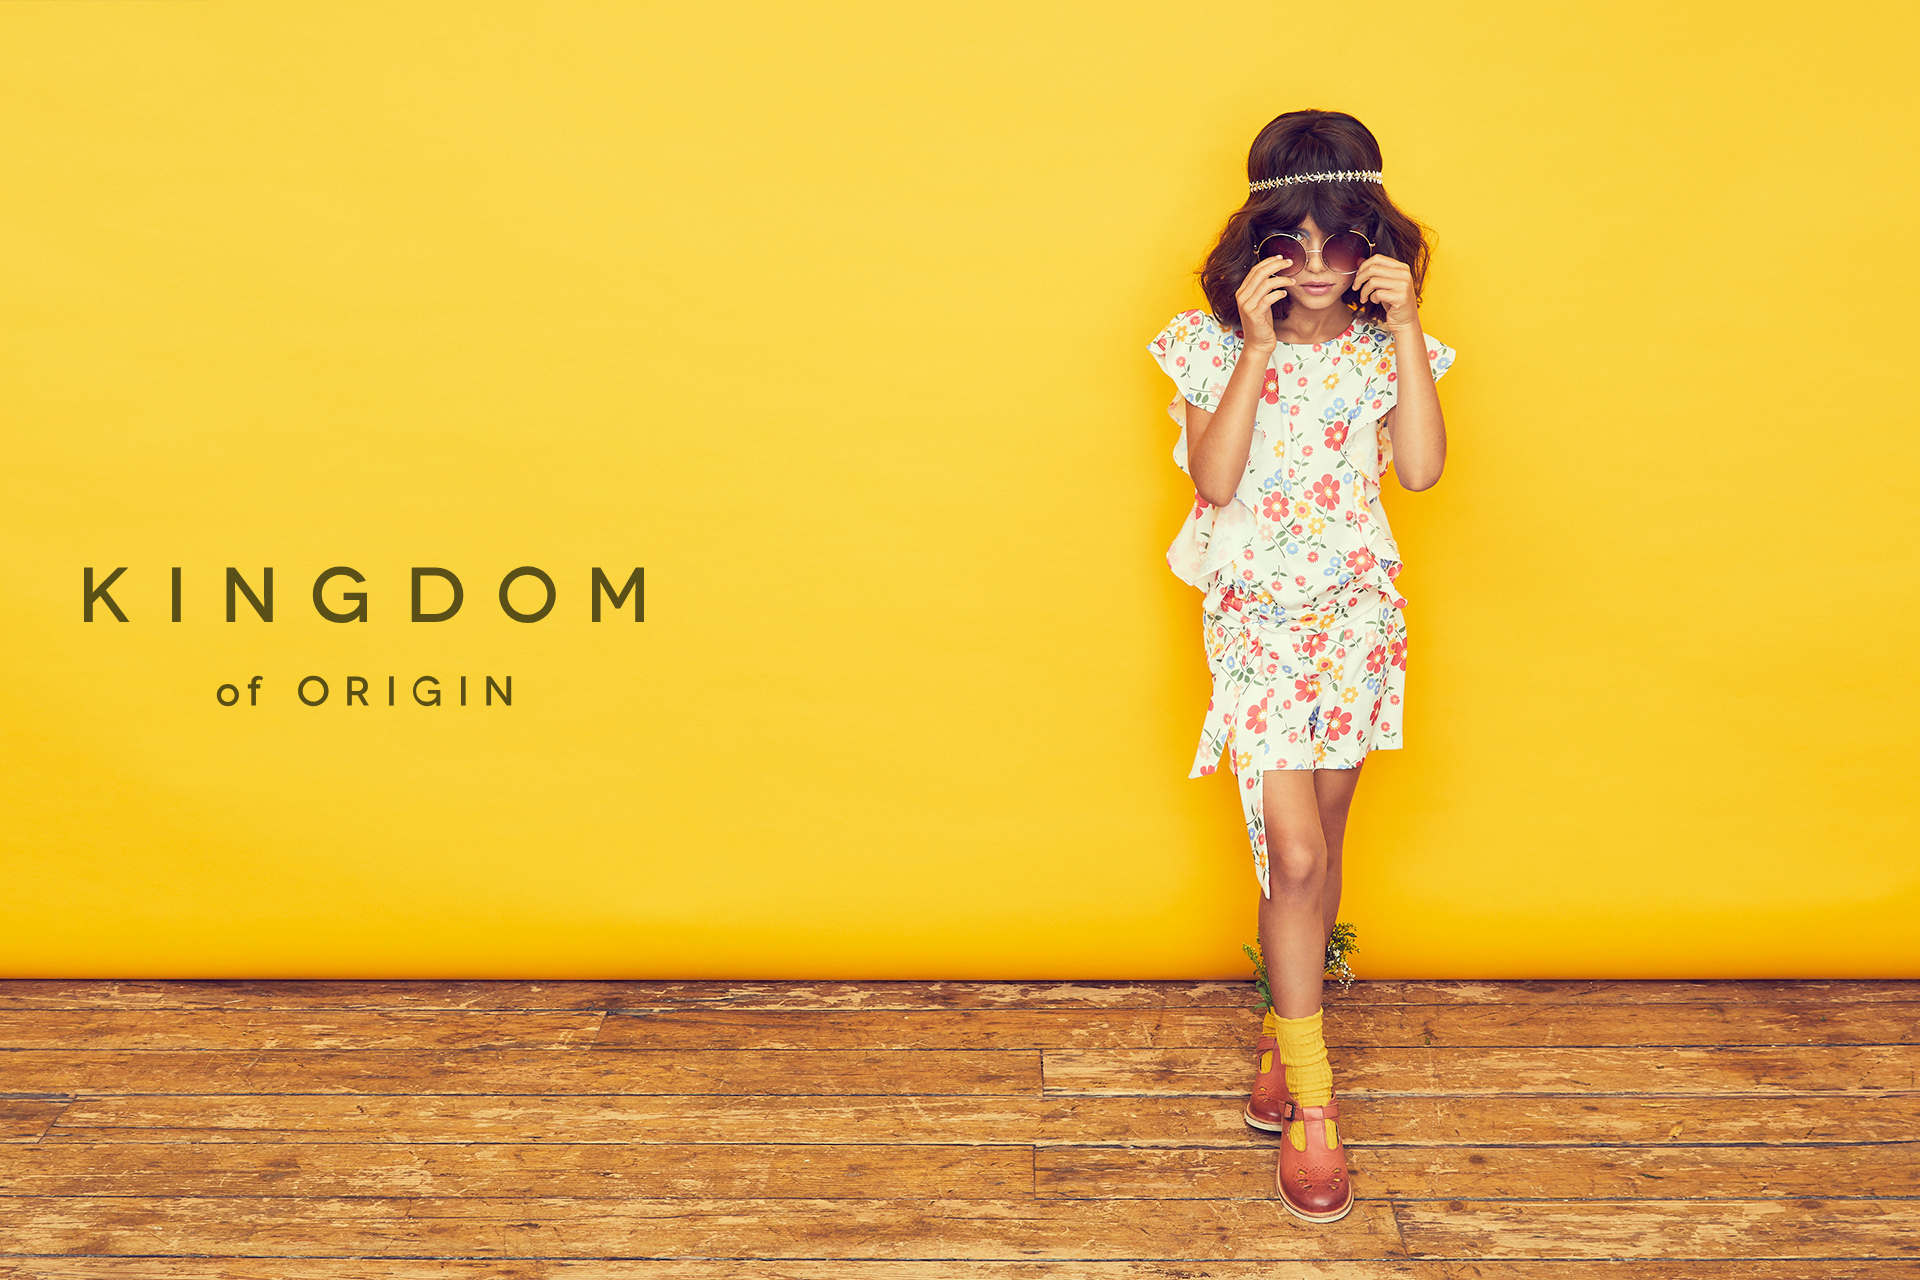 KOO girl kids fashion looking cool